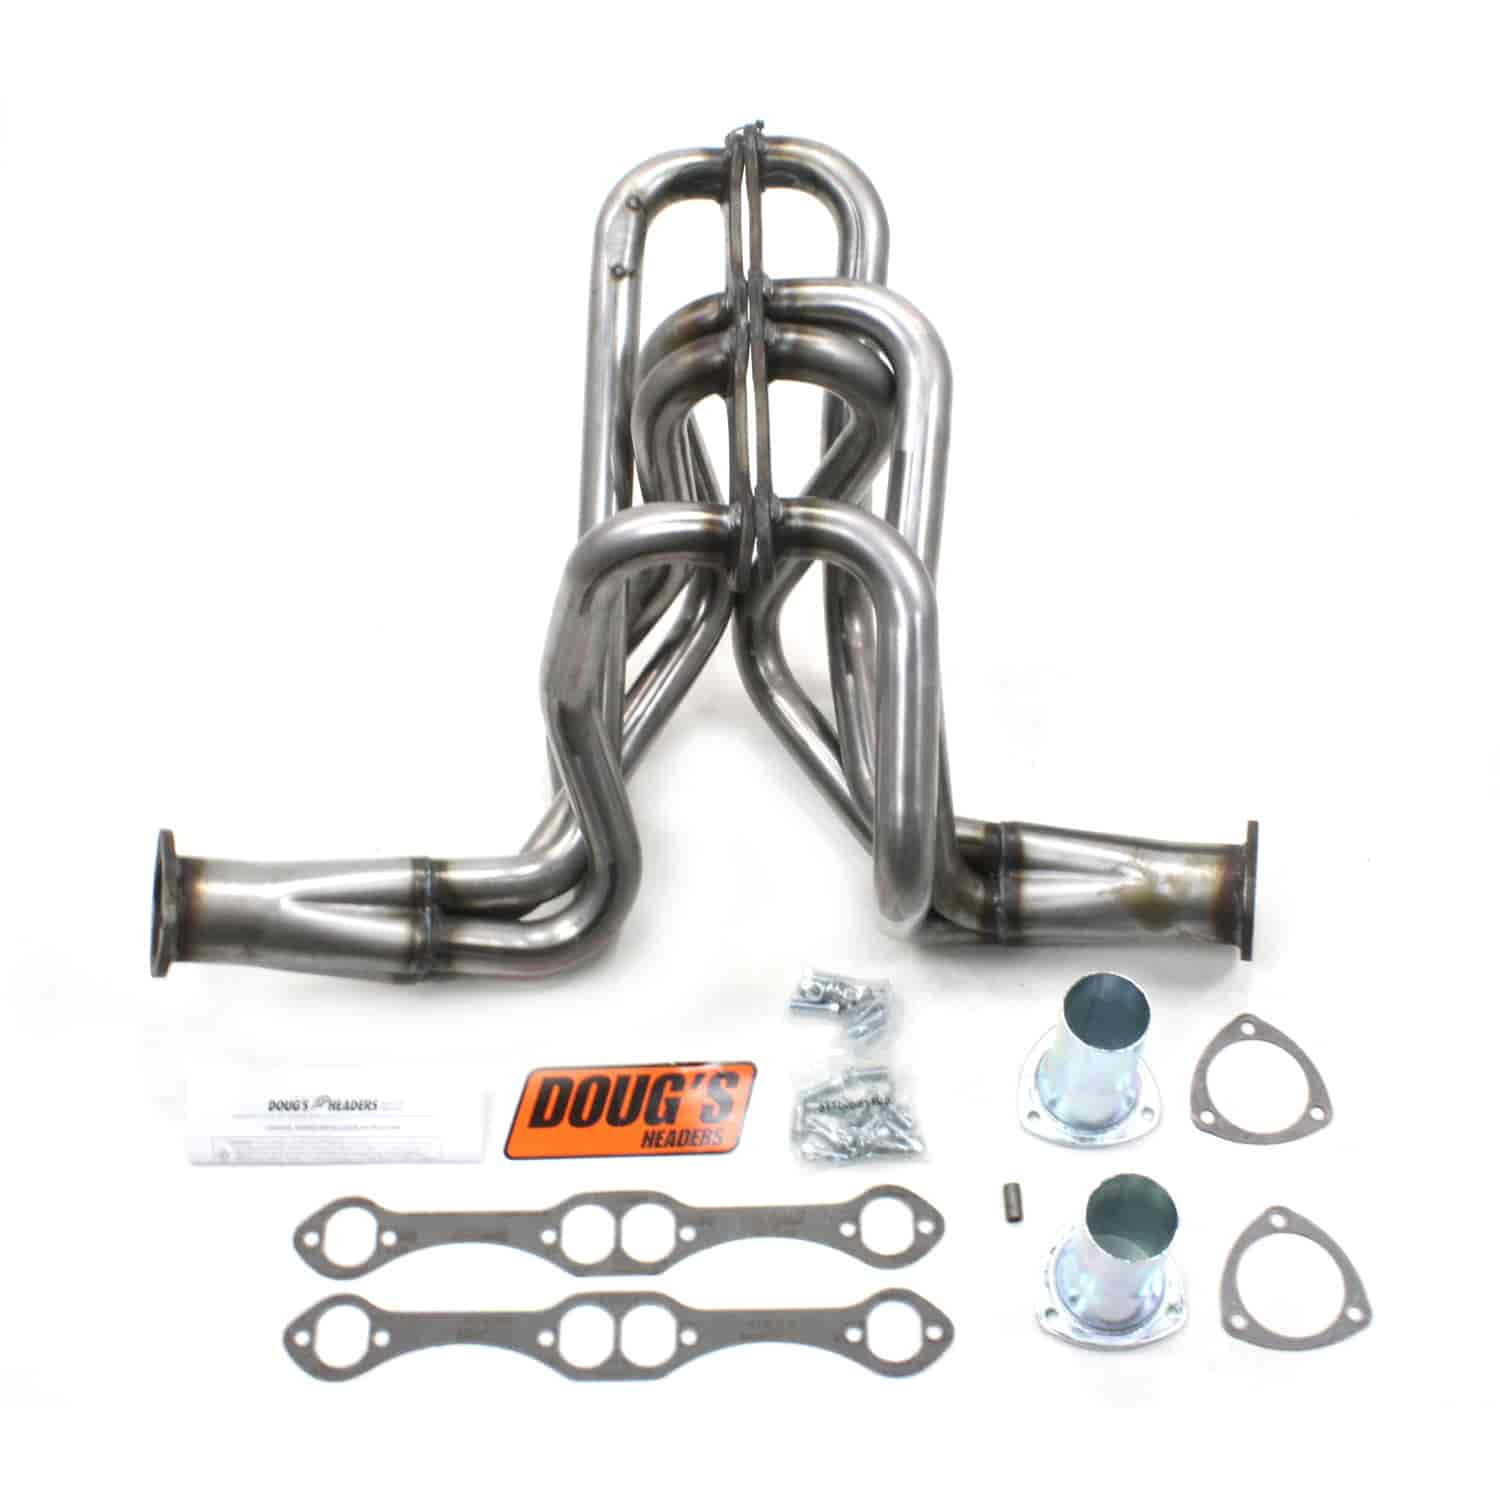 Doug's Headers D358-R